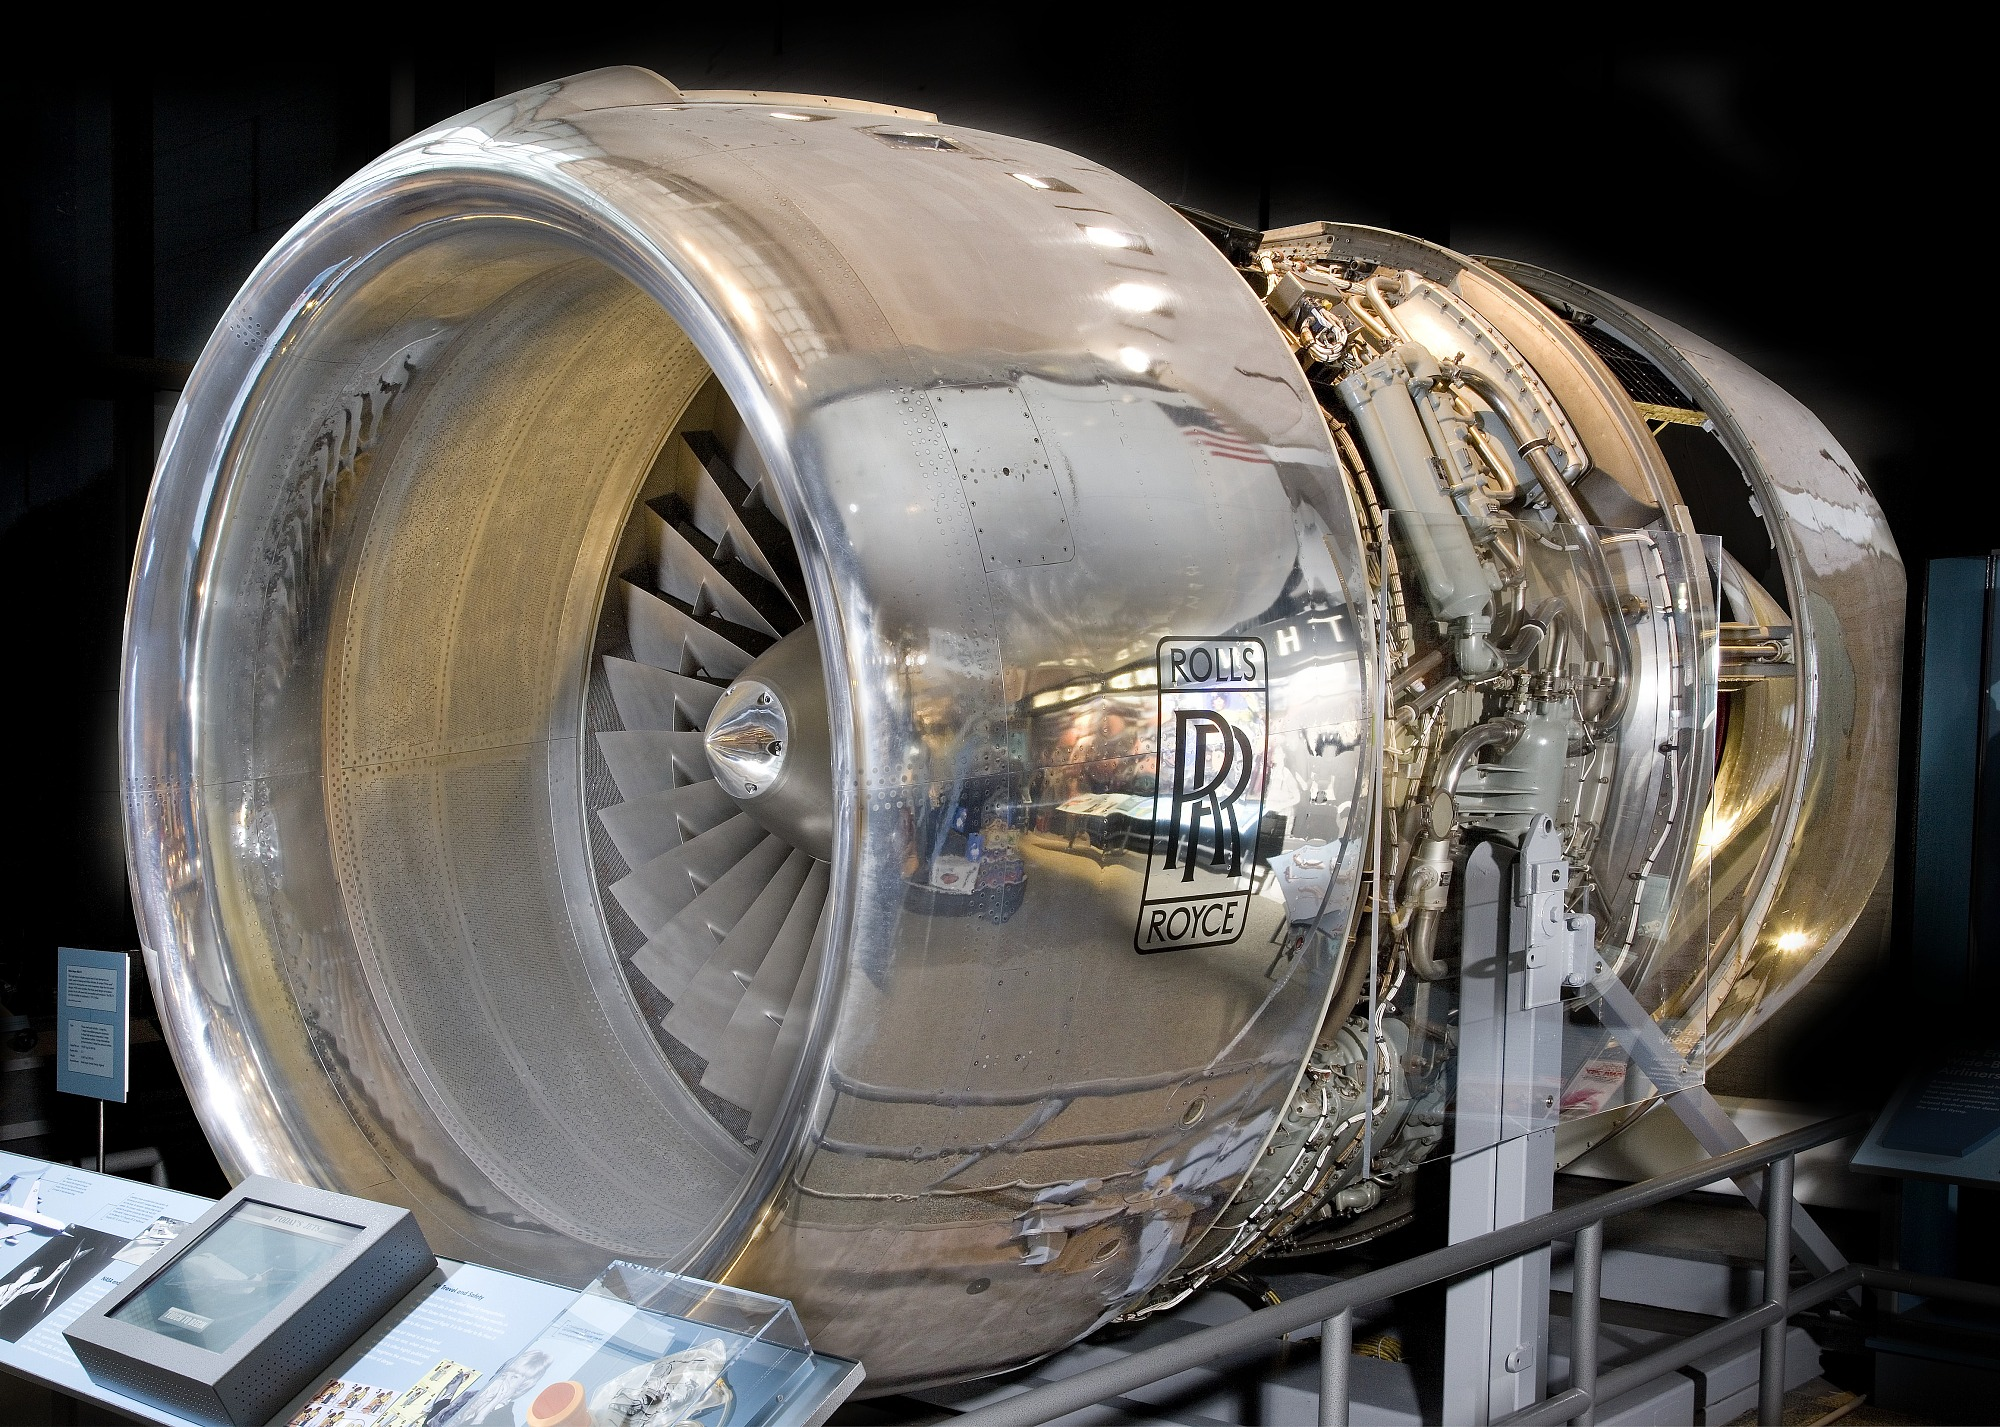 Image of : Rolls-Royce RB211-22 Turbofan Engine, Cutaway